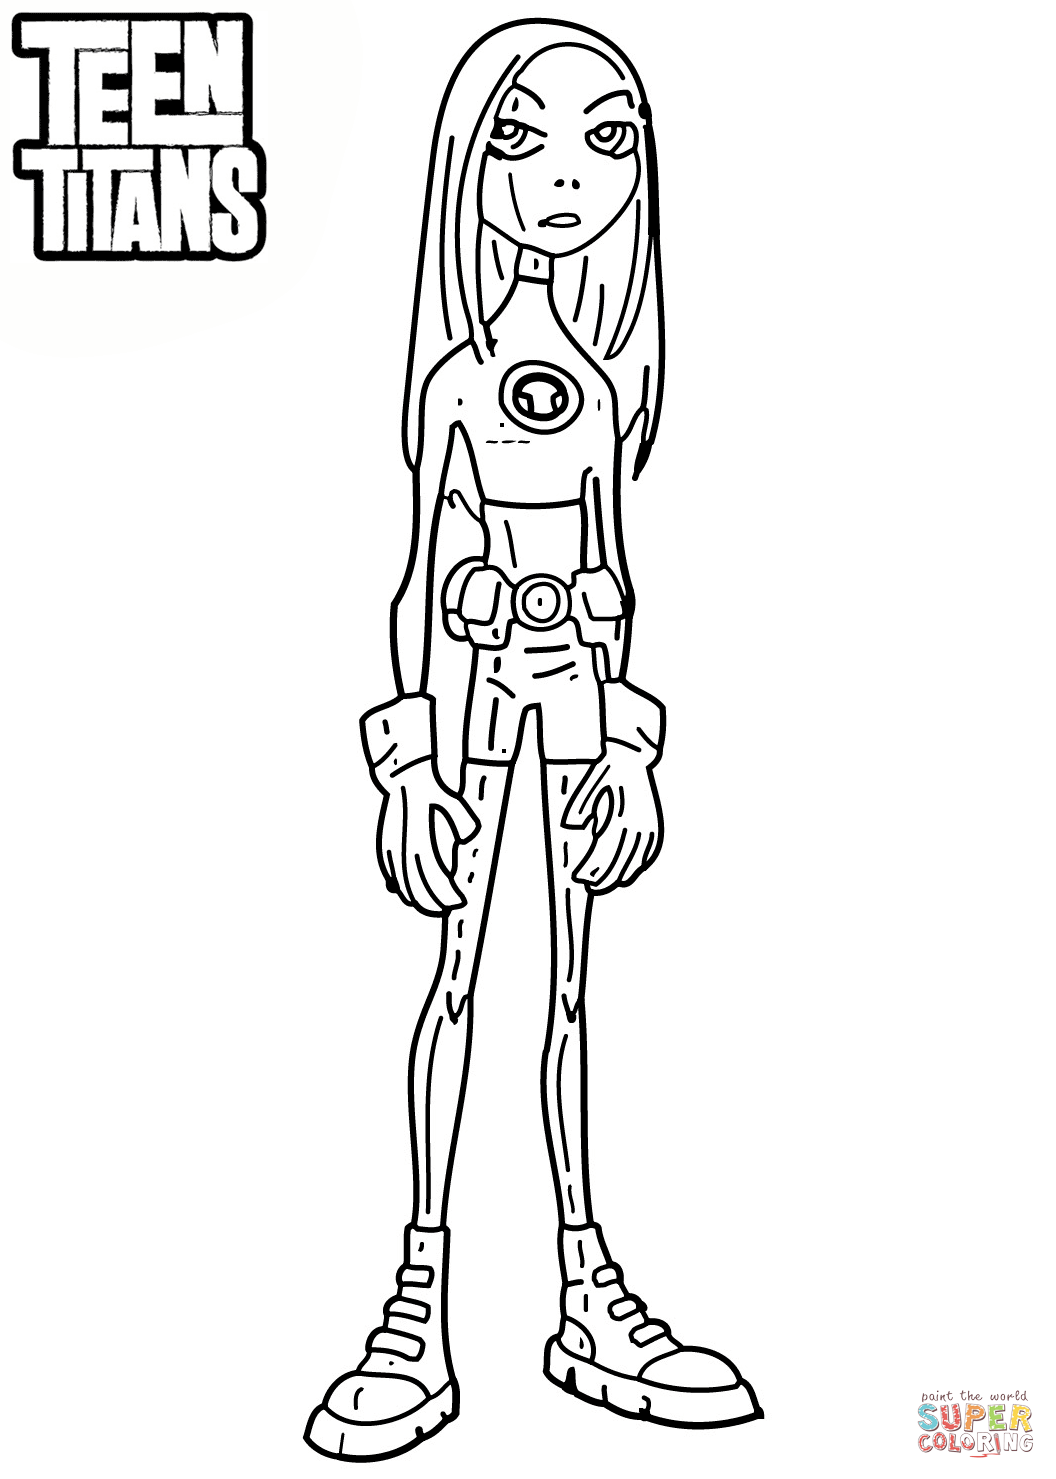 Teen Titan Coloring Pages : titan, coloring, pages, Titans, Terra, Coloring, Printable, Pages